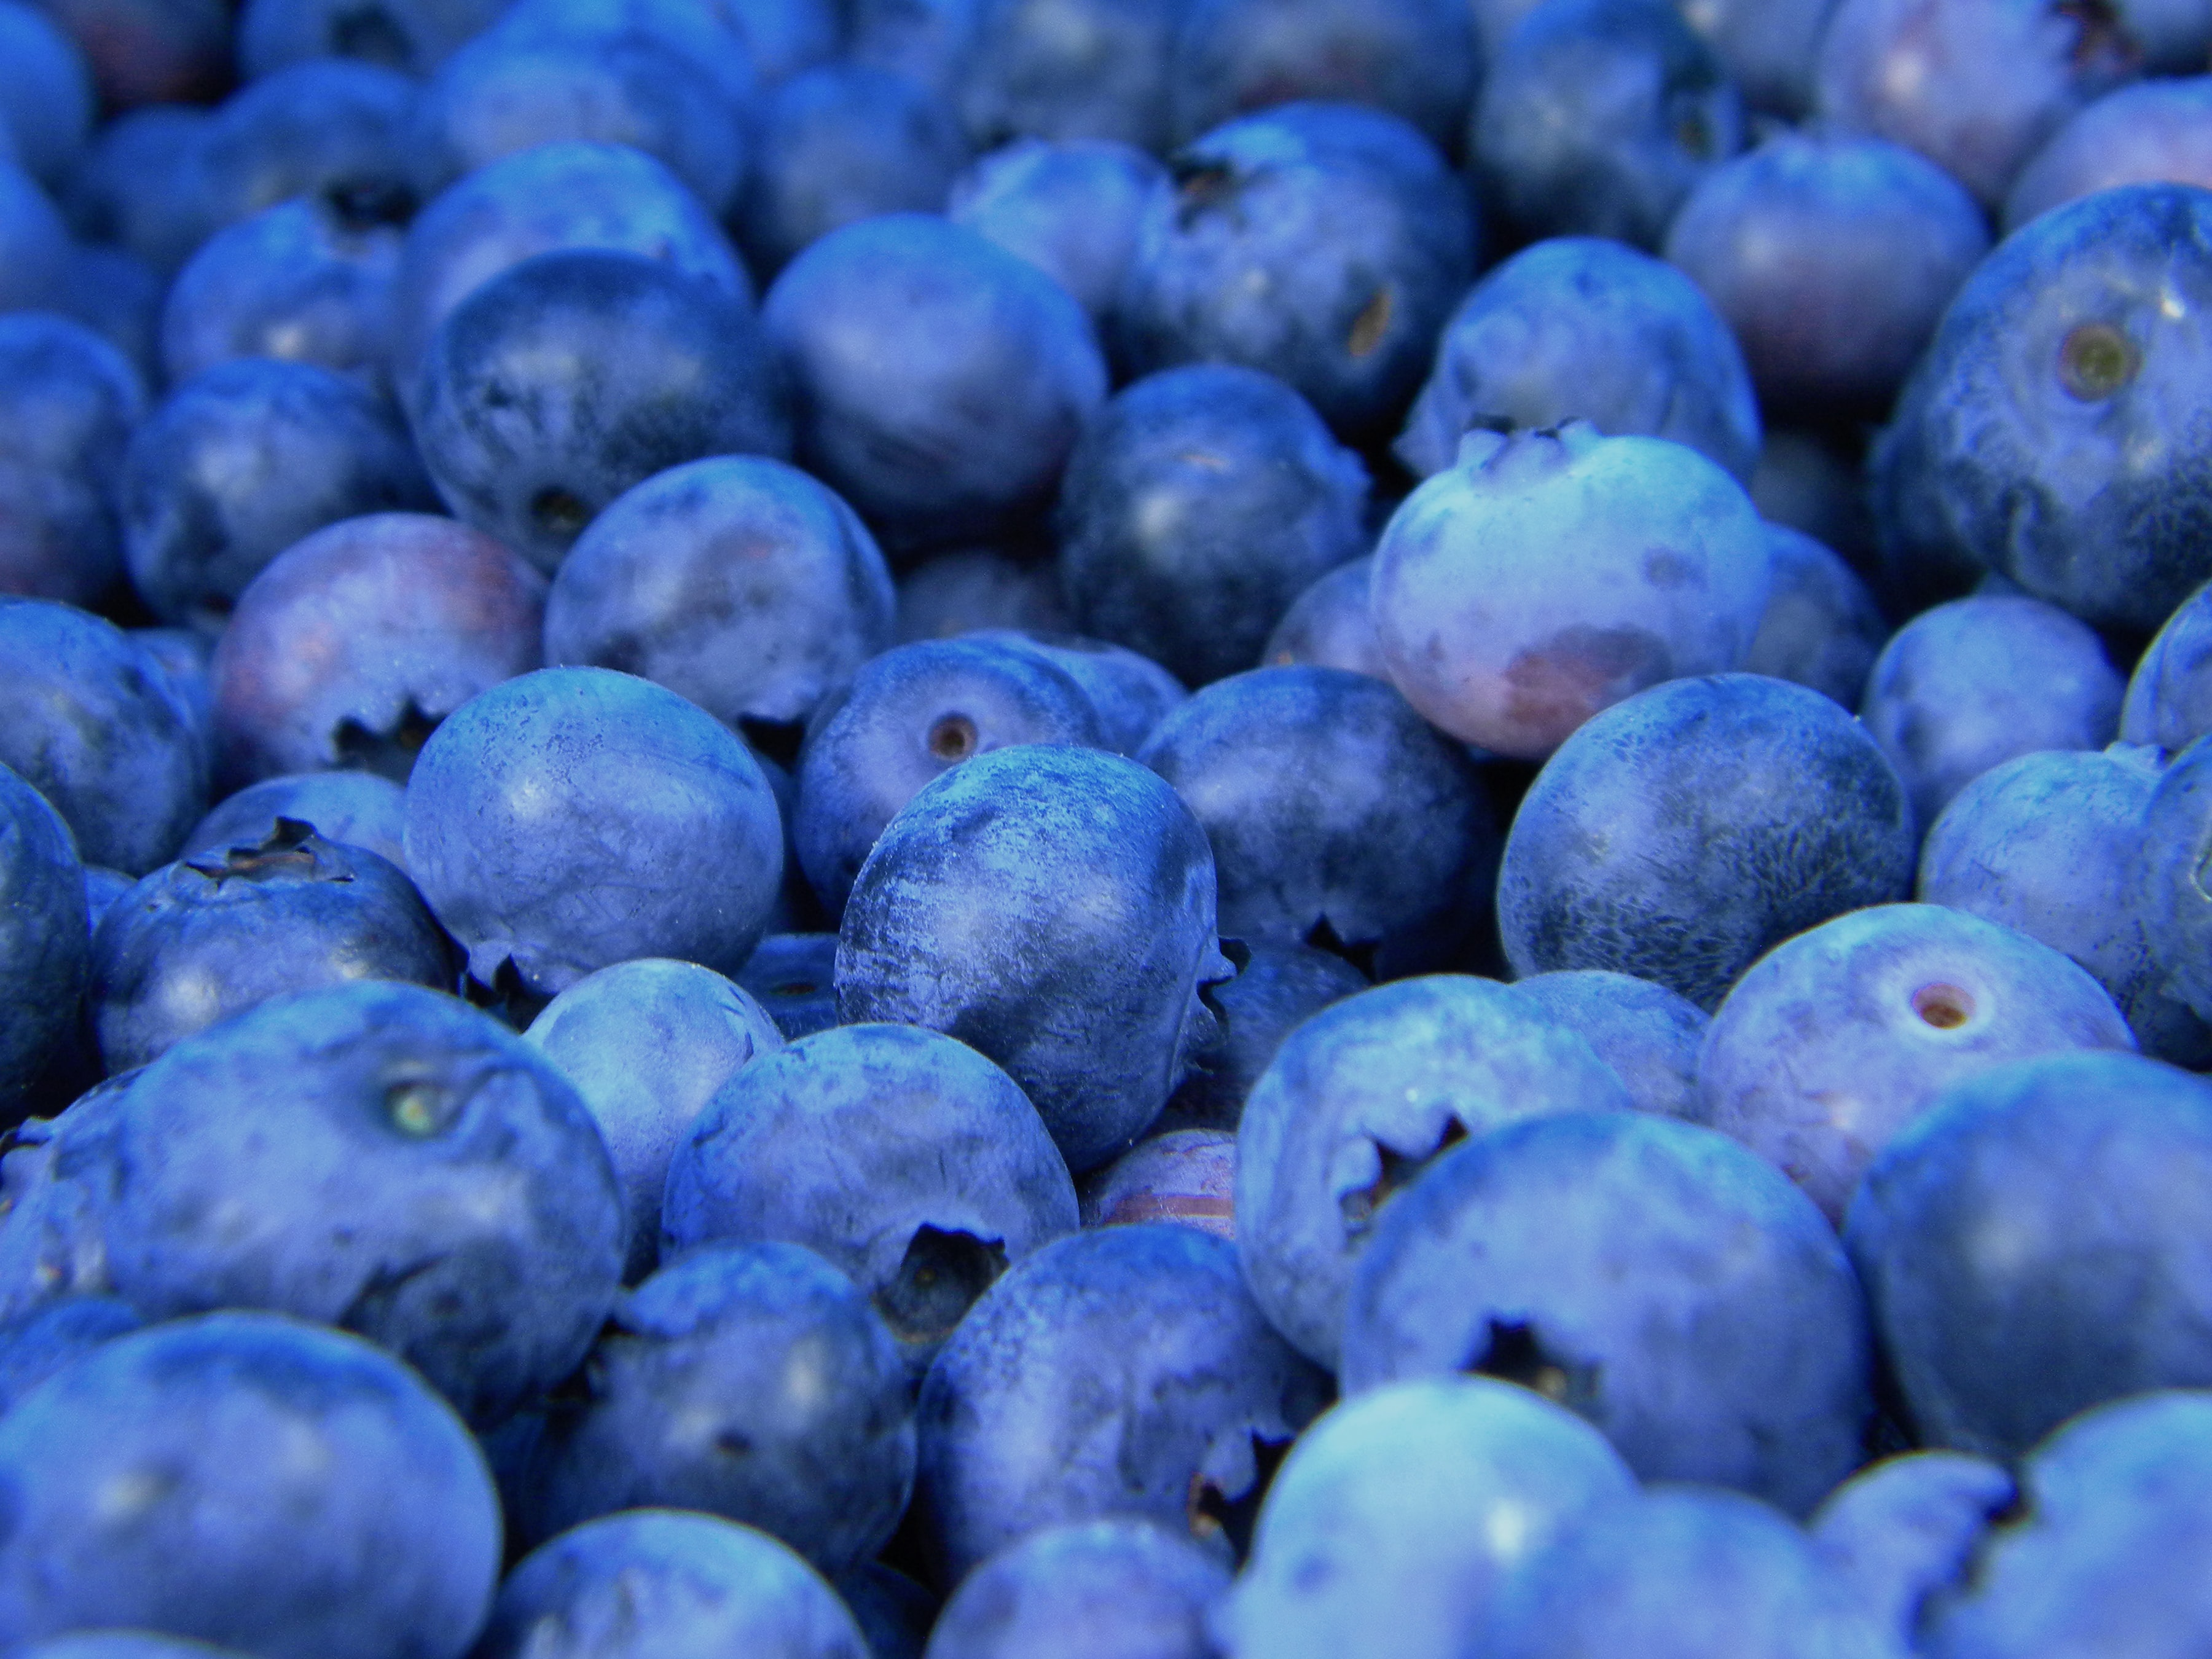 Macro shot of fresh blueberries